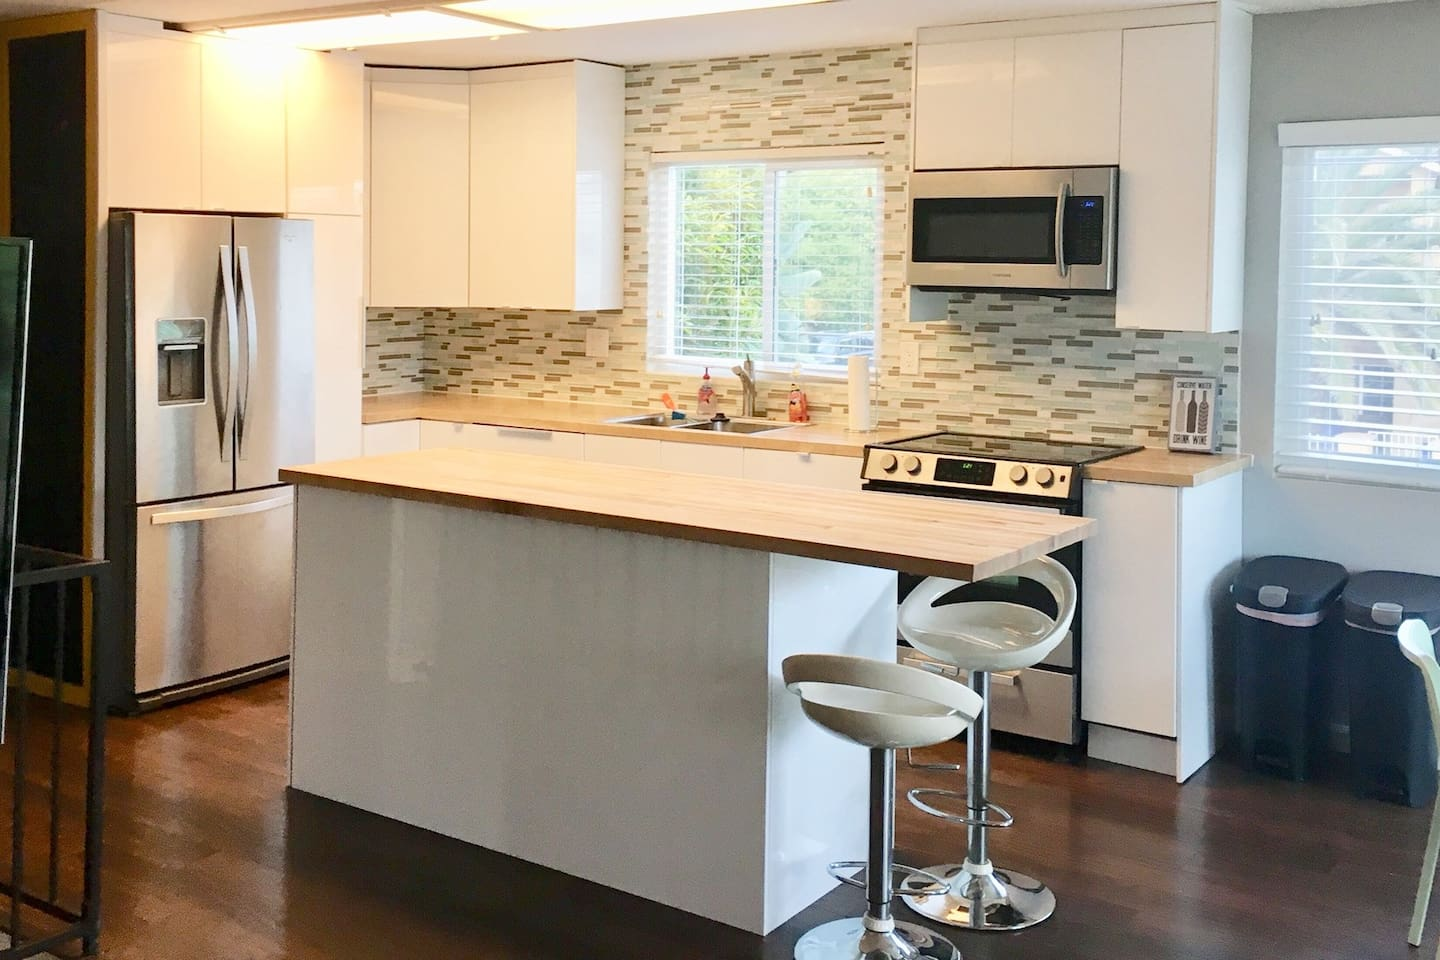 Upstairs: Large, light, bright remodeled kitchen. Kitchen has 10' long butcher block island with 2 barstool seats. There is an oven, microwave, refrigerator, dishwasher, and Keurig coffee maker. A cook's dream!!